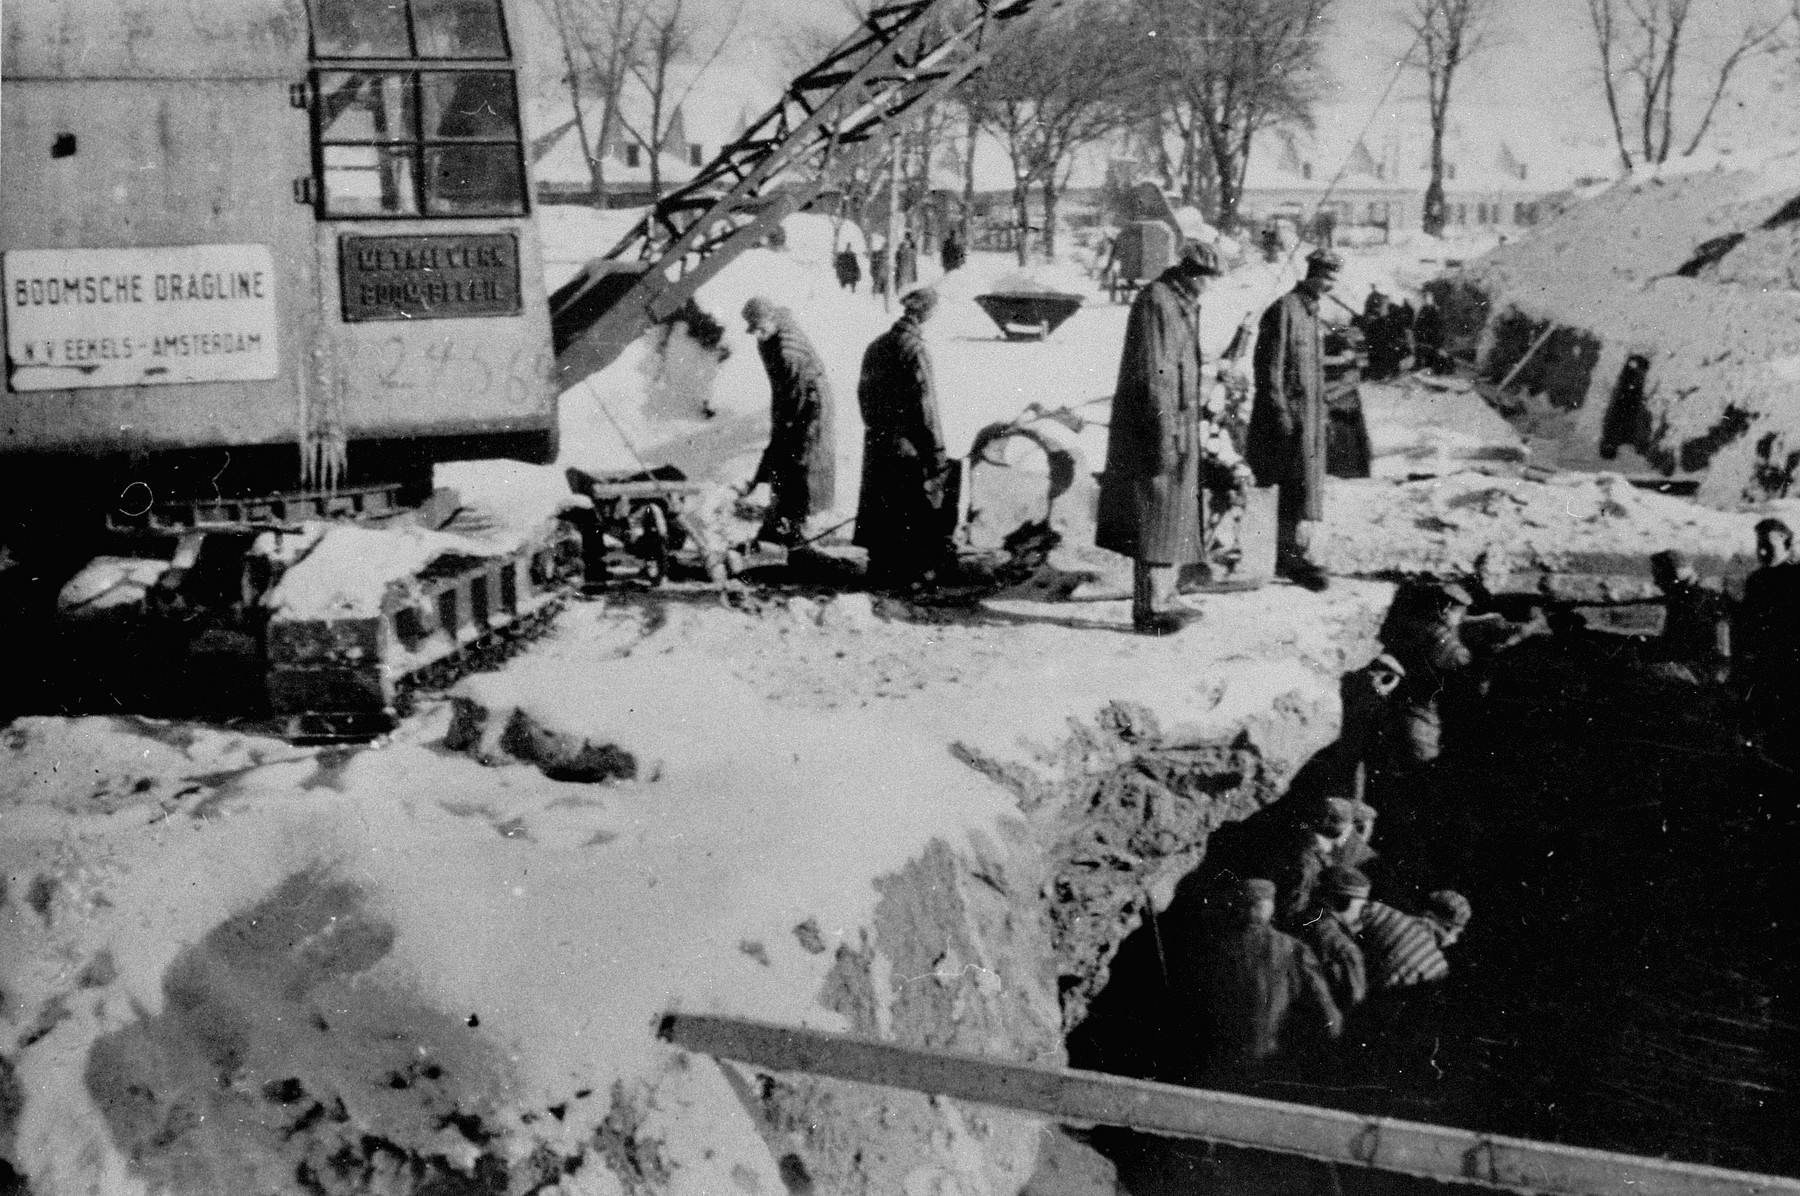 Prisoners at forced labor digging a drainage or sewerage trench in Auschwitz.